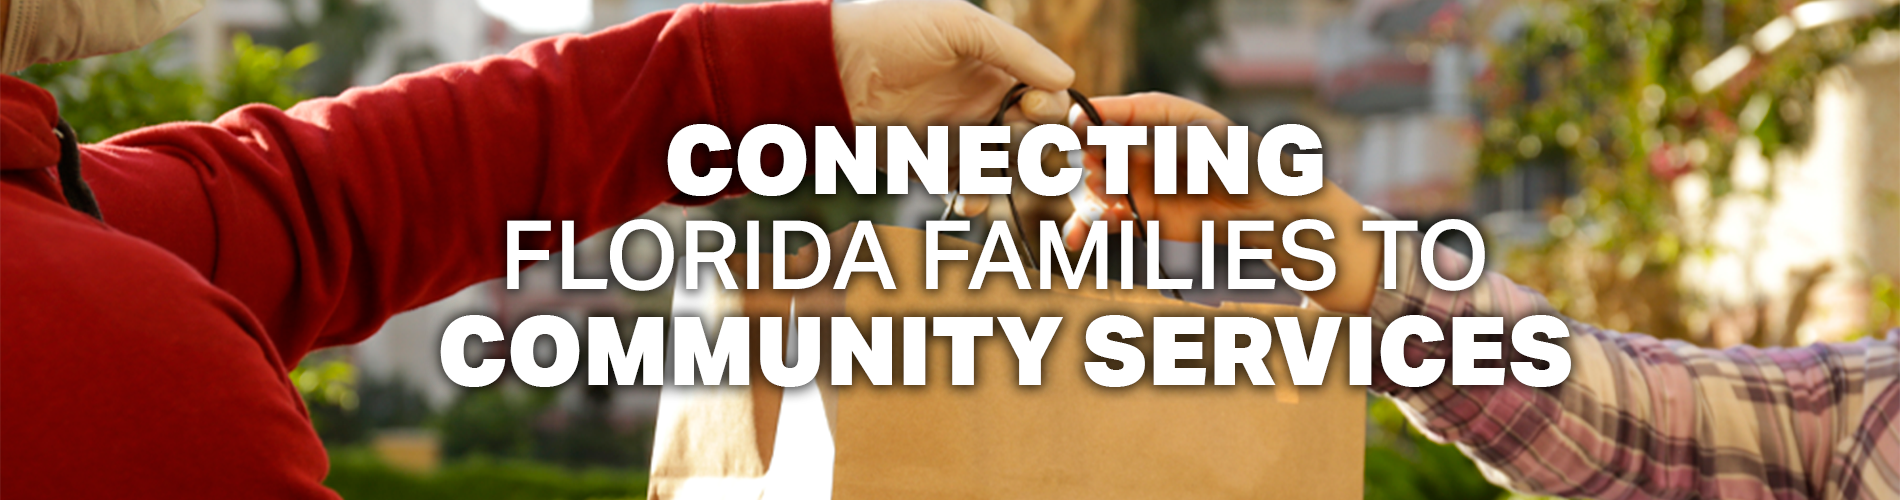 Connecting Florida Families to Community Services.  Image of person handing out food